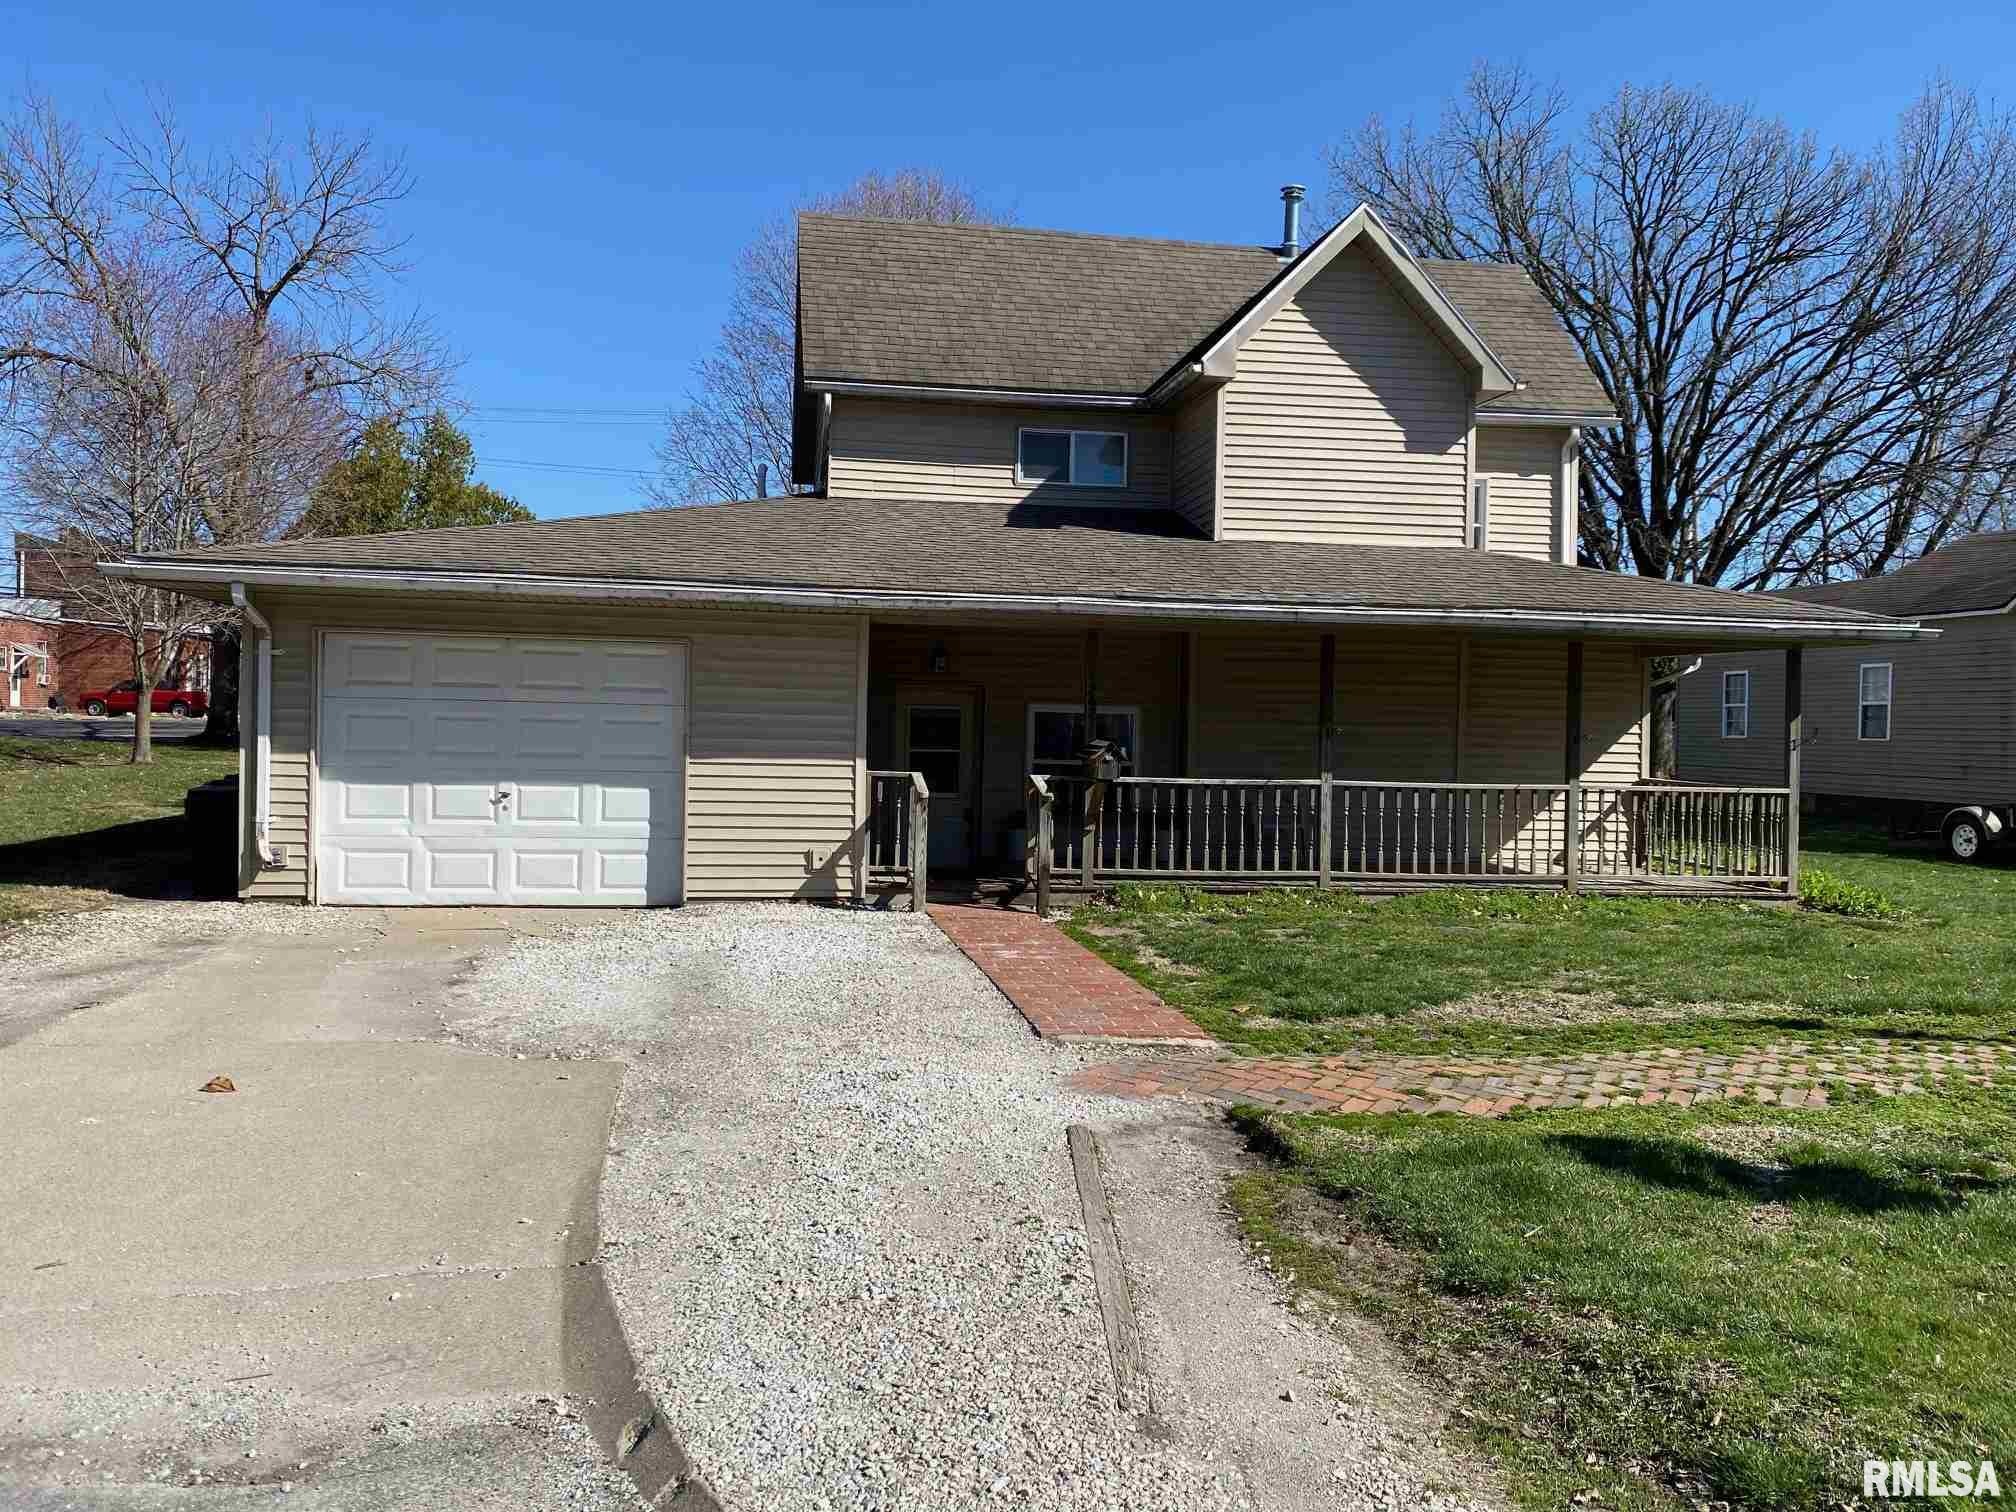 362 N DEAN Property Photo - Bushnell, IL real estate listing